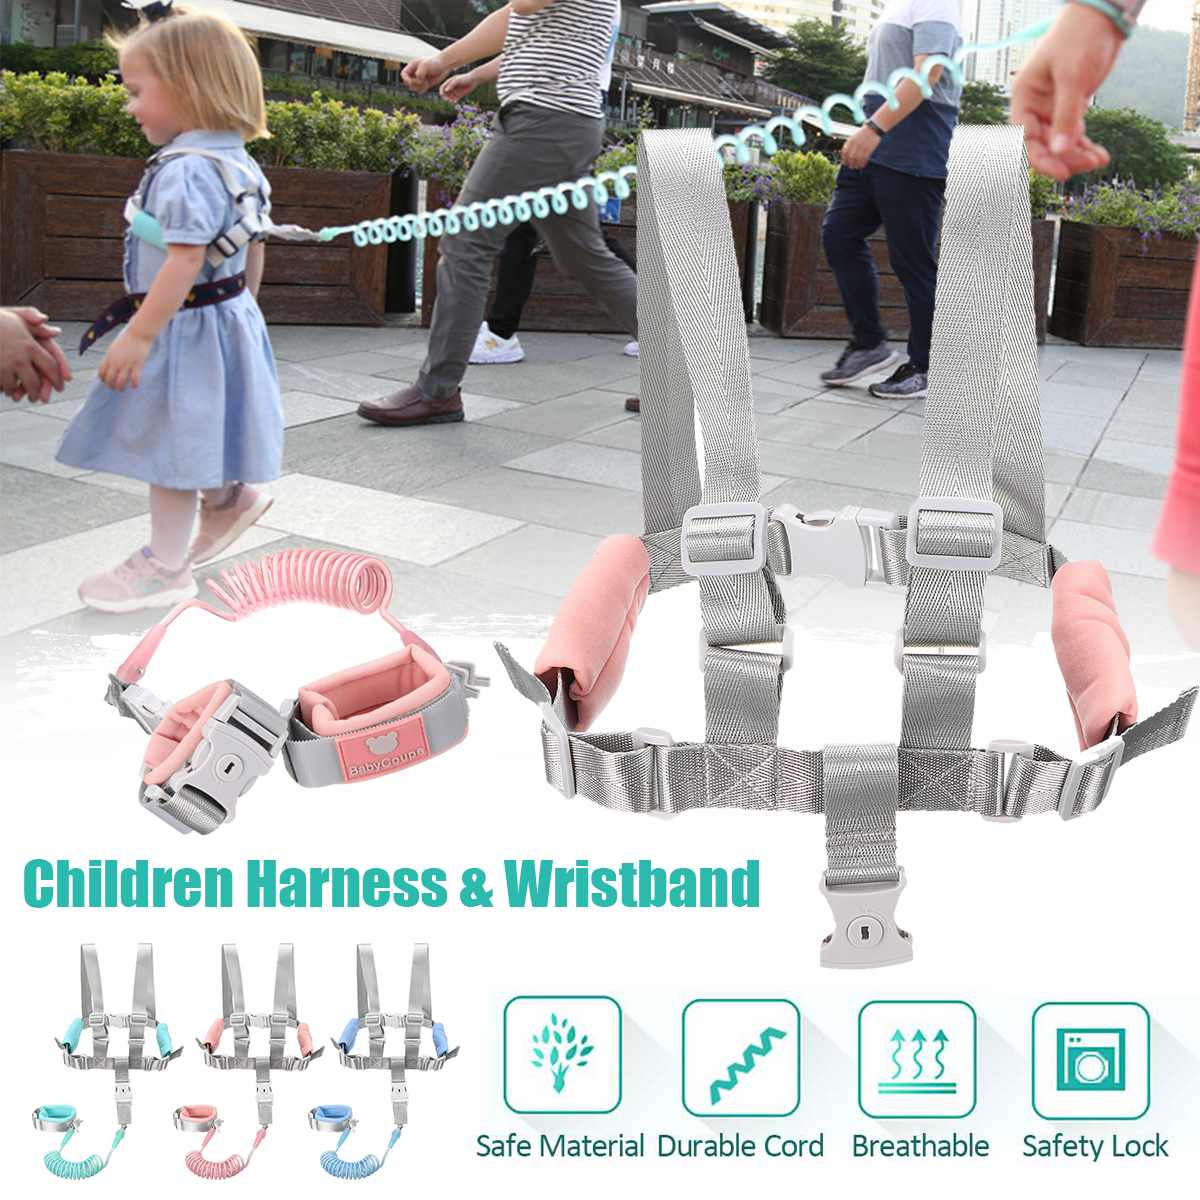 Child Harness Anti-lost Wrist Link Belt Breathable Kid Rope Safety Strap W/ Key Lock Baby Outdoor Play Wristband Walker Safety